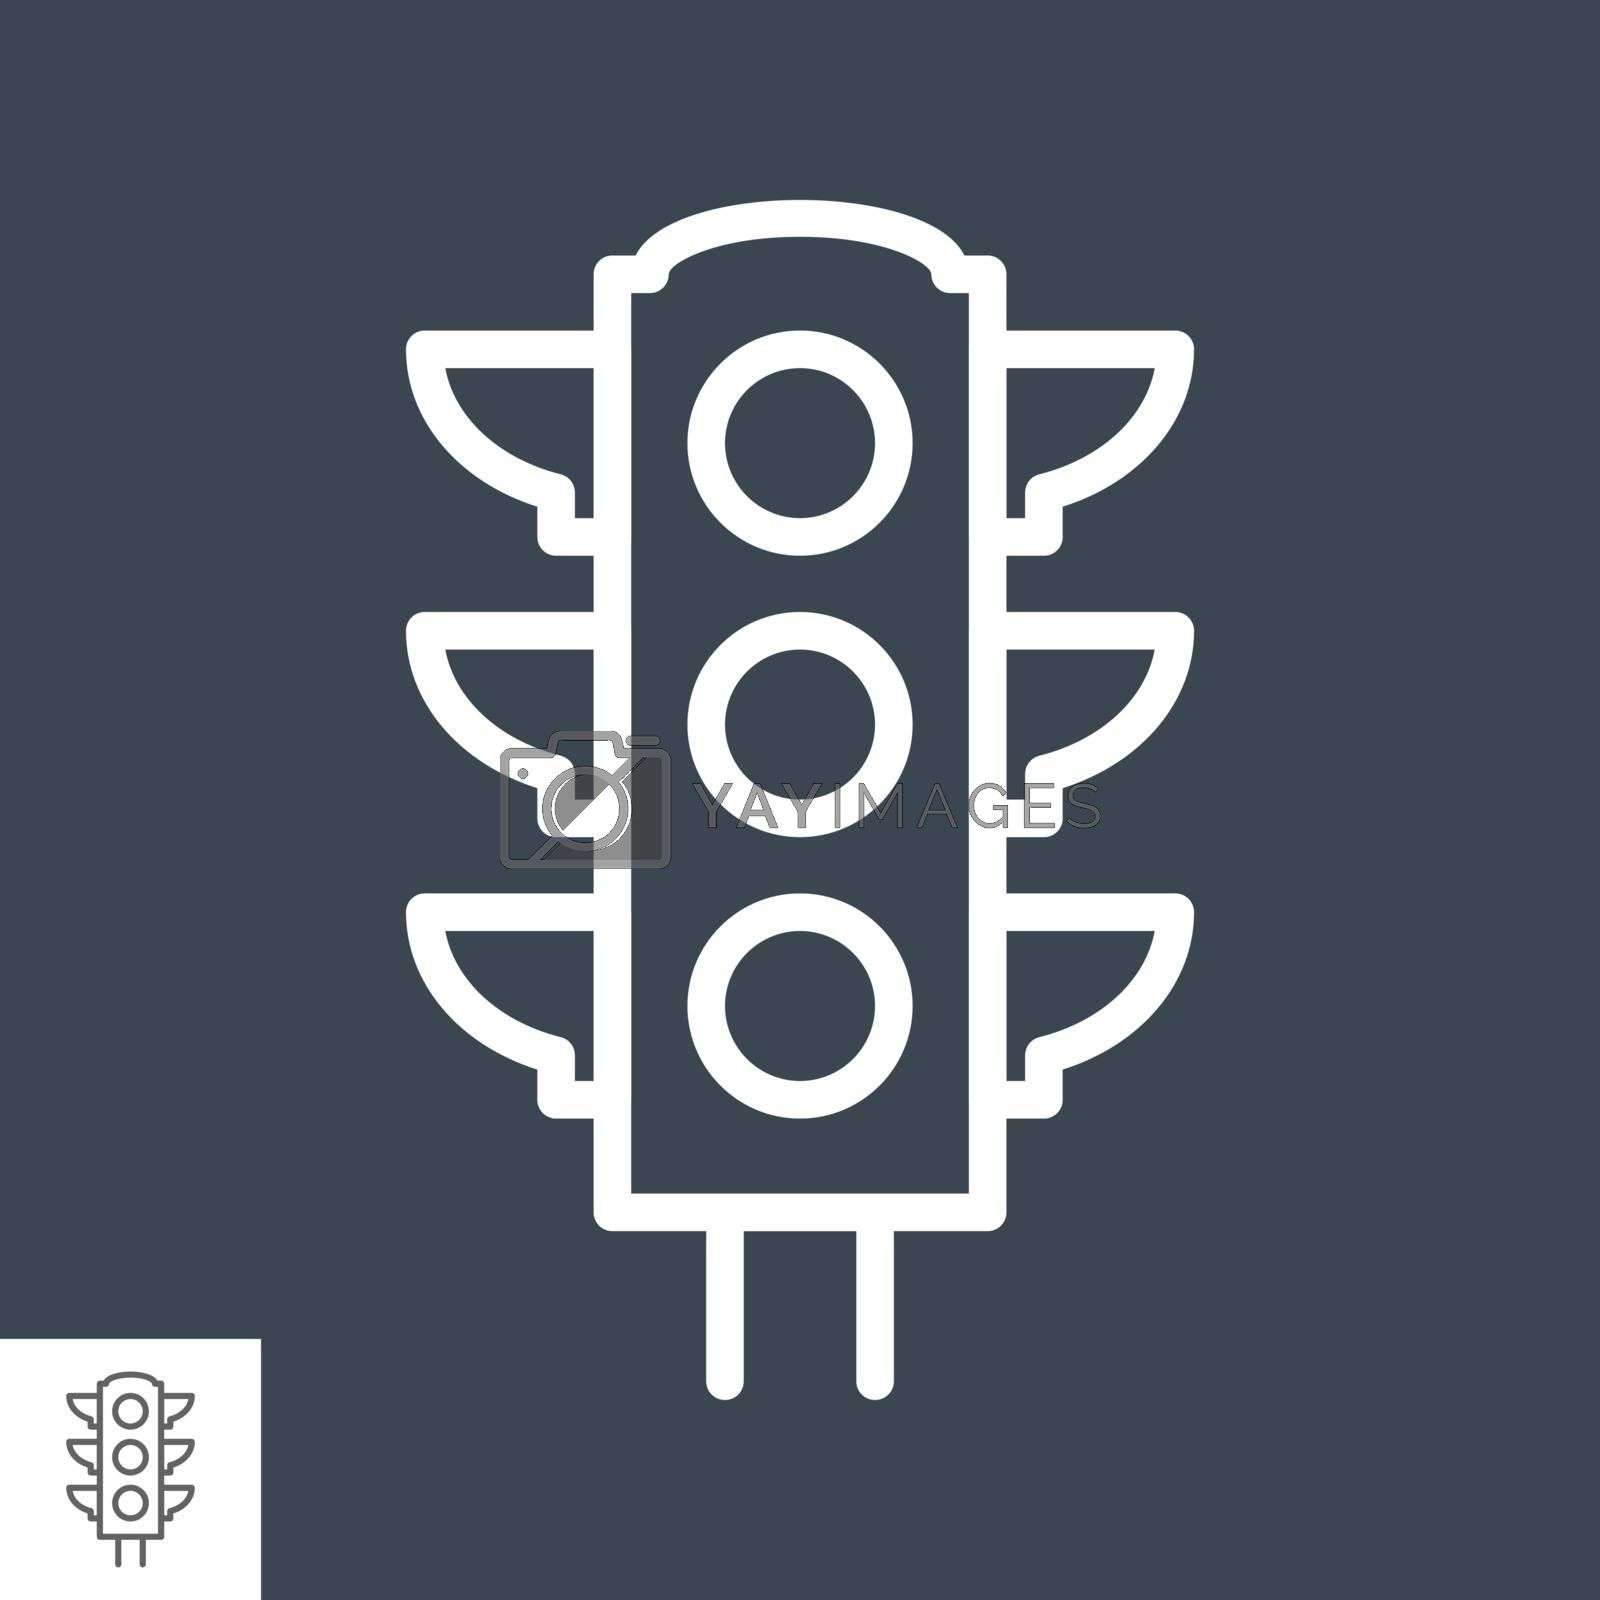 Traffic Light Thin Line Vector Icon Isolated on the Black Background.